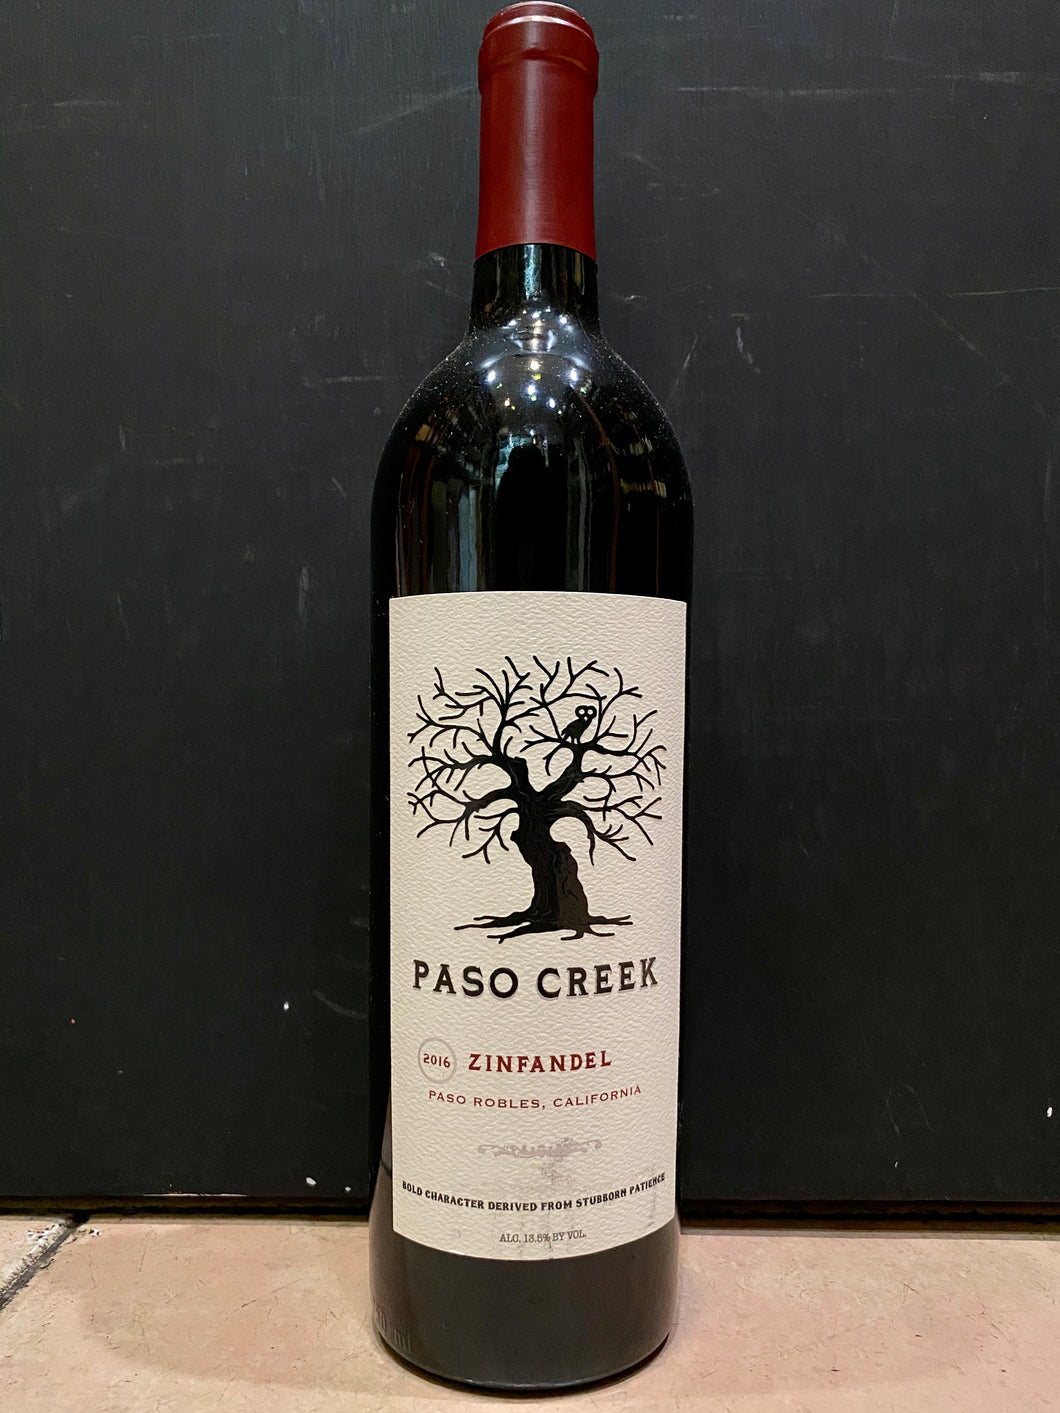 Paso Creek Zinfandel